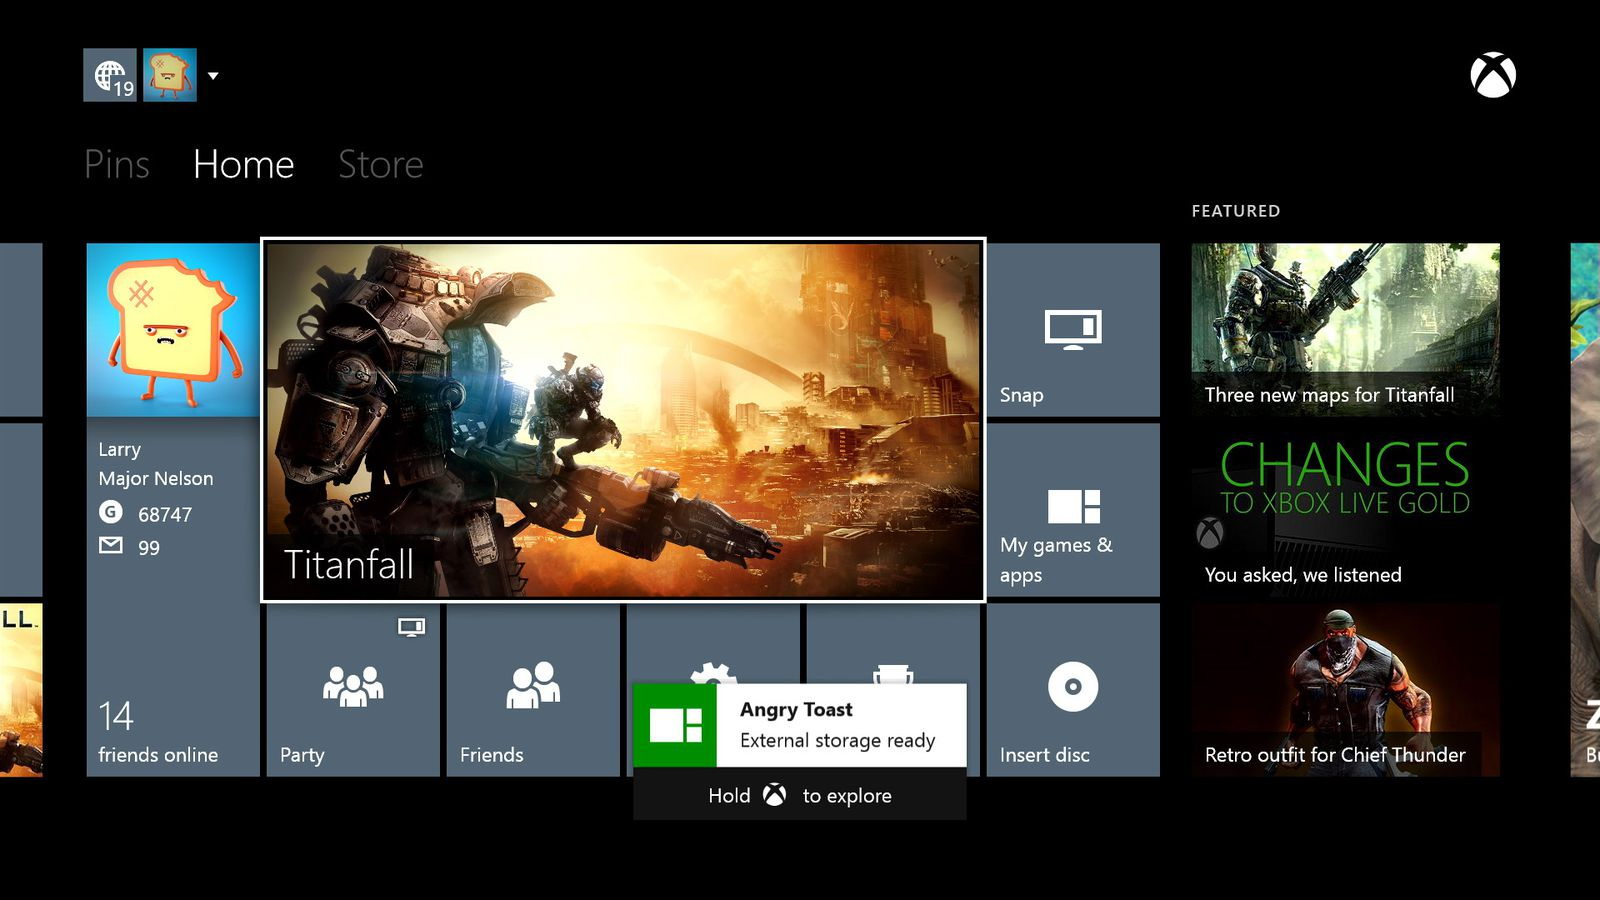 Xbox One Gets External Storage Real Name Support With